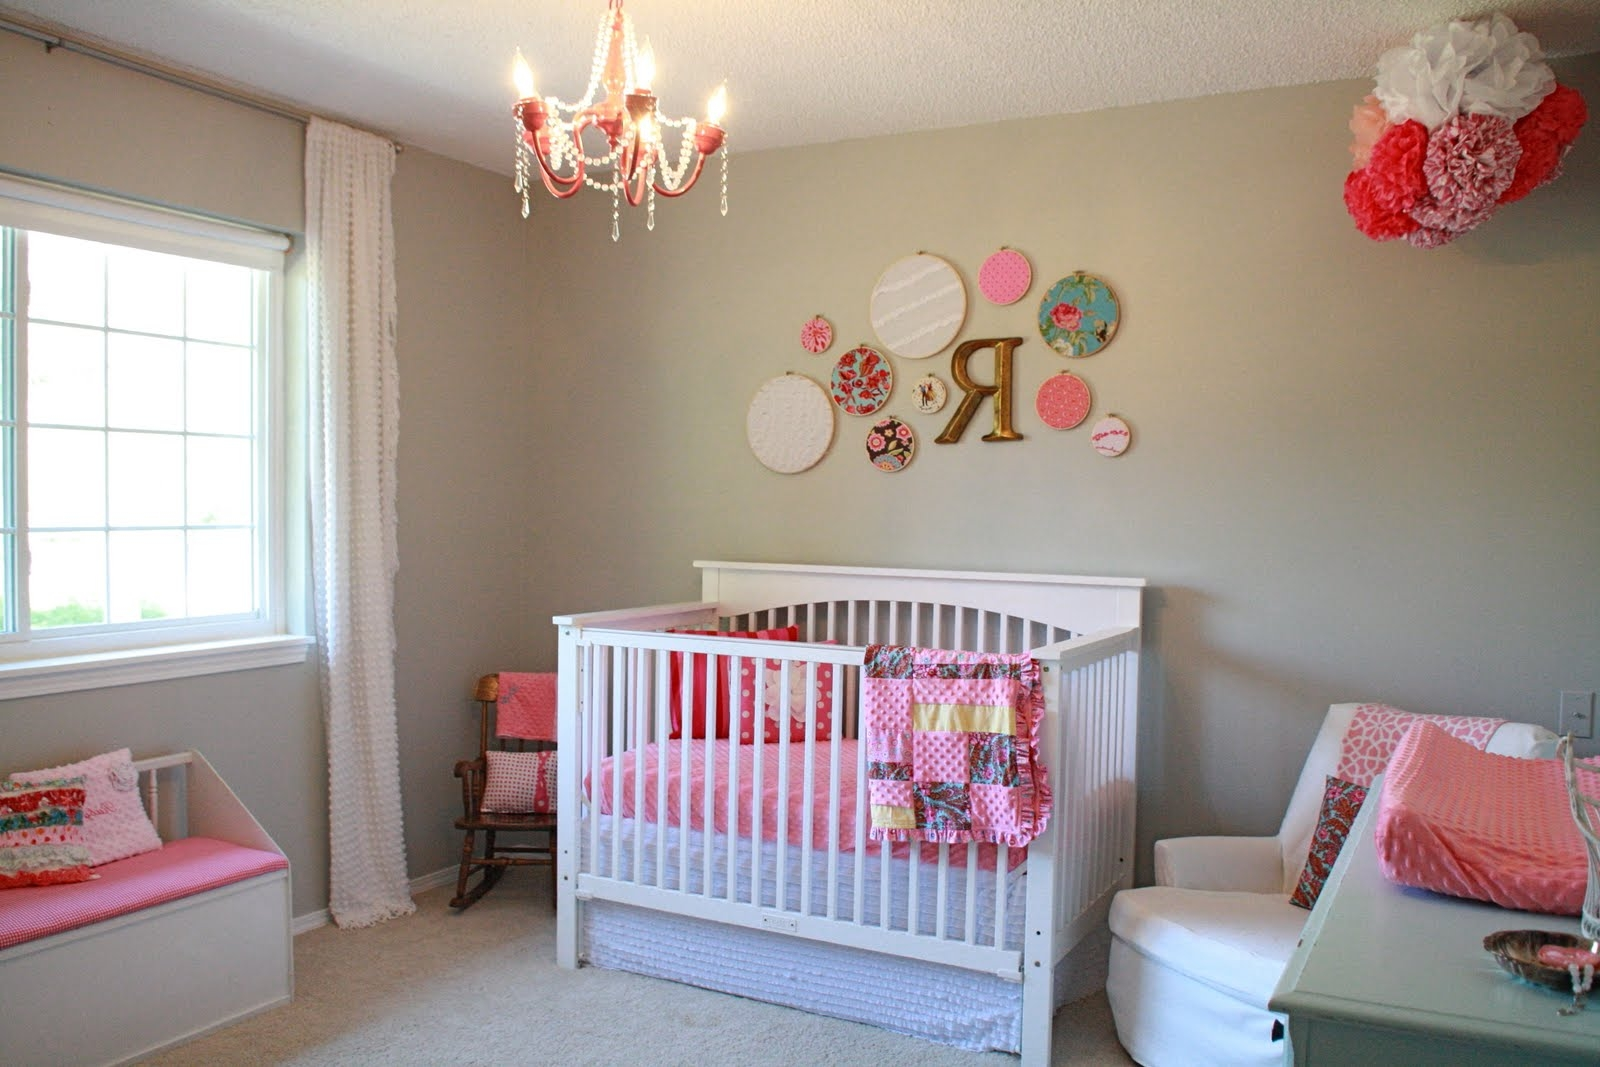 Baby Girl Room Decor Ideas: baby girl decorating room